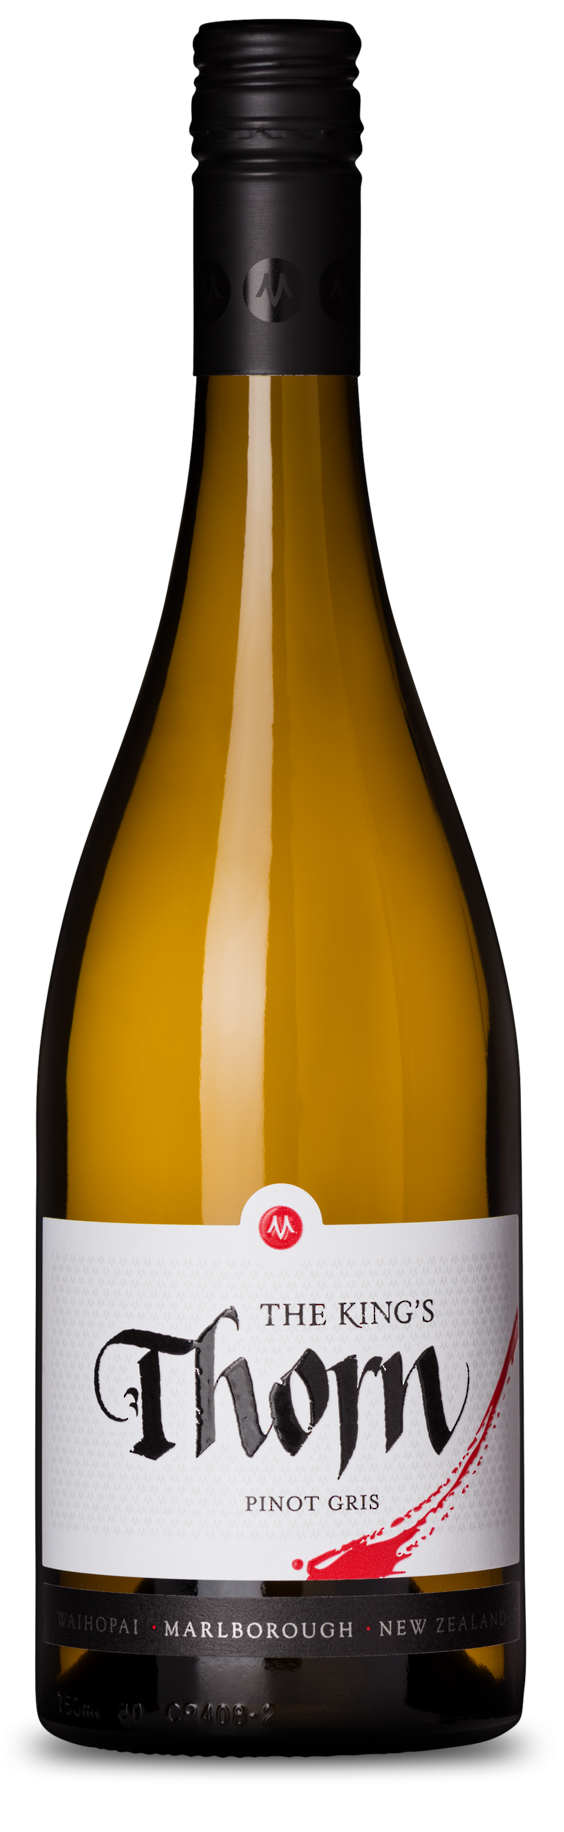 The King's Thorn Pinot Gris 2019 image 0